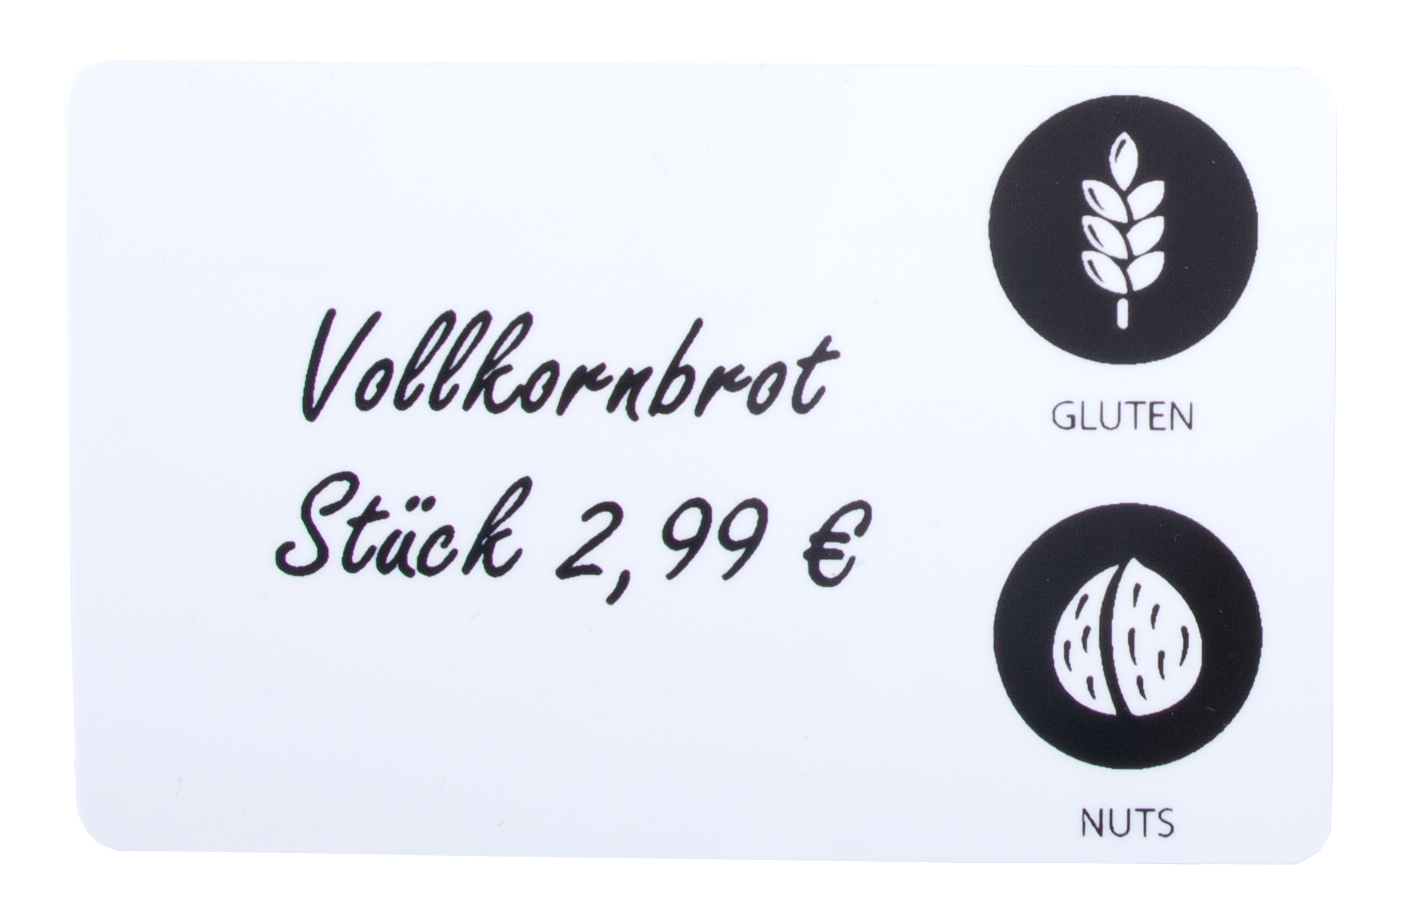 Preisschild_Allergene_Food-Safe-Card_weiss58ef71d6a8648